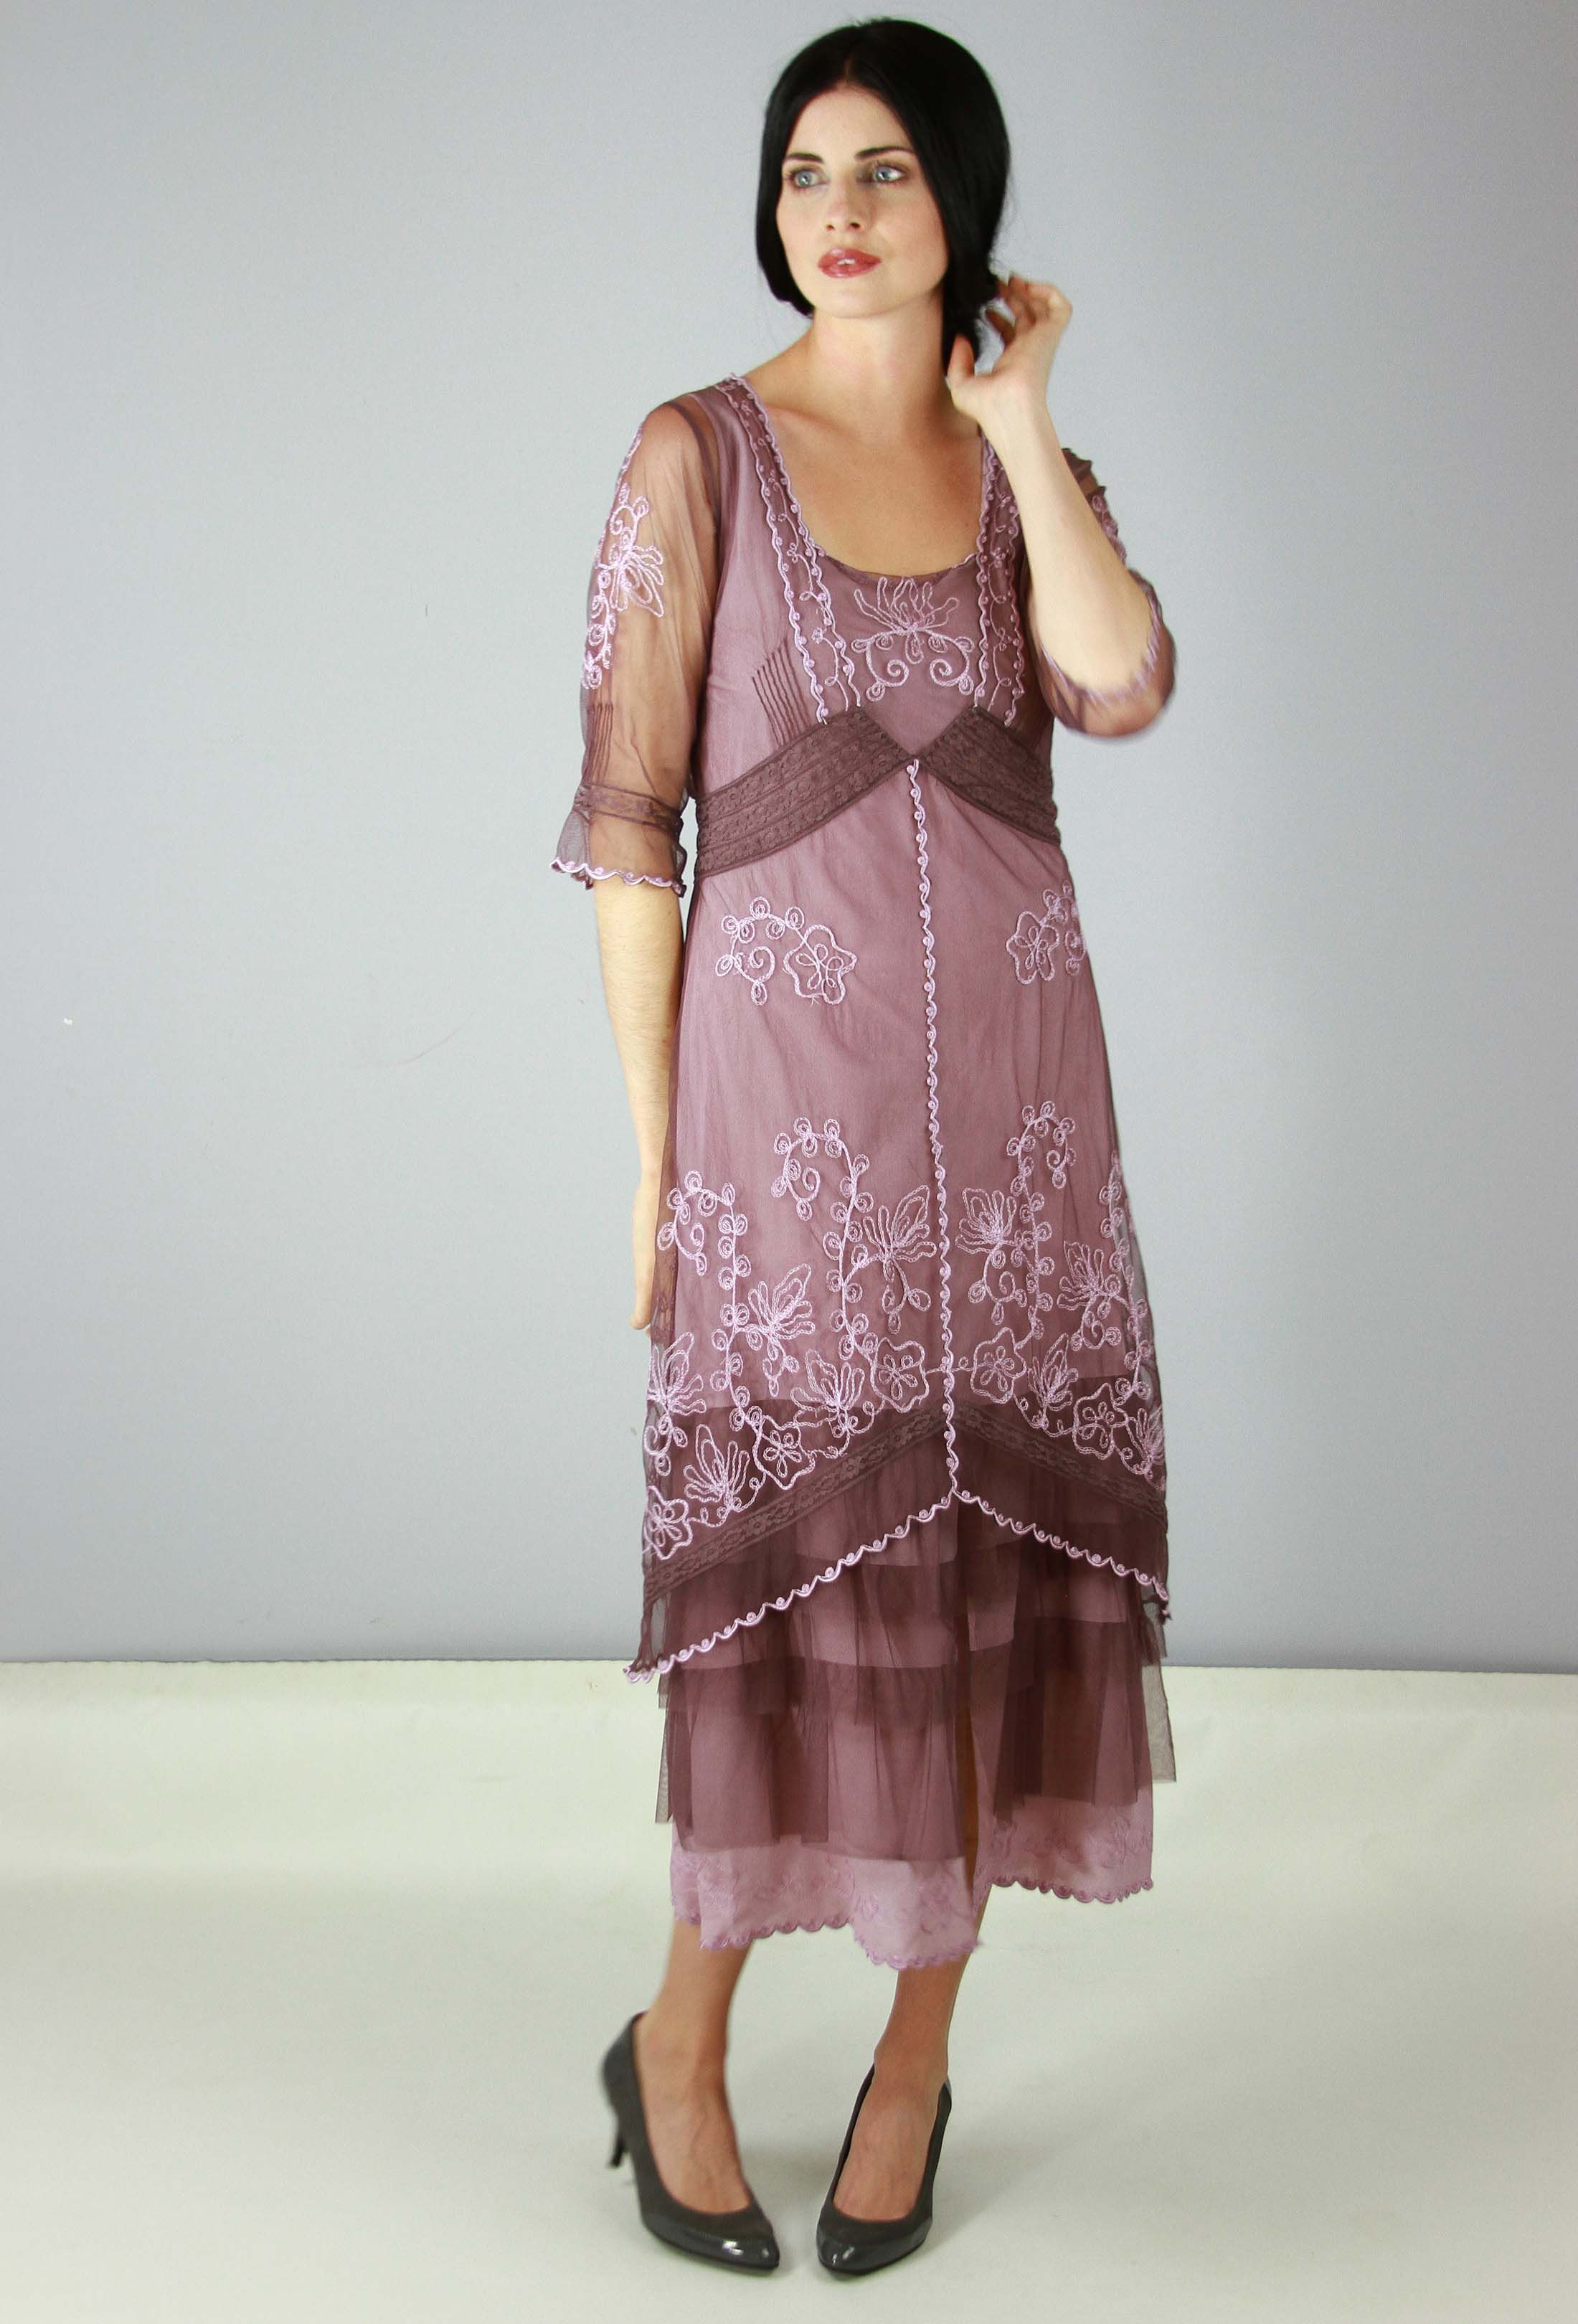 c7e1f6a7f24 Buy Vintage Style Tea Length Dresses at the Wardrobe Shop - The Wardrobe  Shop. 1920s Plus Size Dress  Titanic Tea Party Dress in Mauve by Nataya   229.00 AT ...